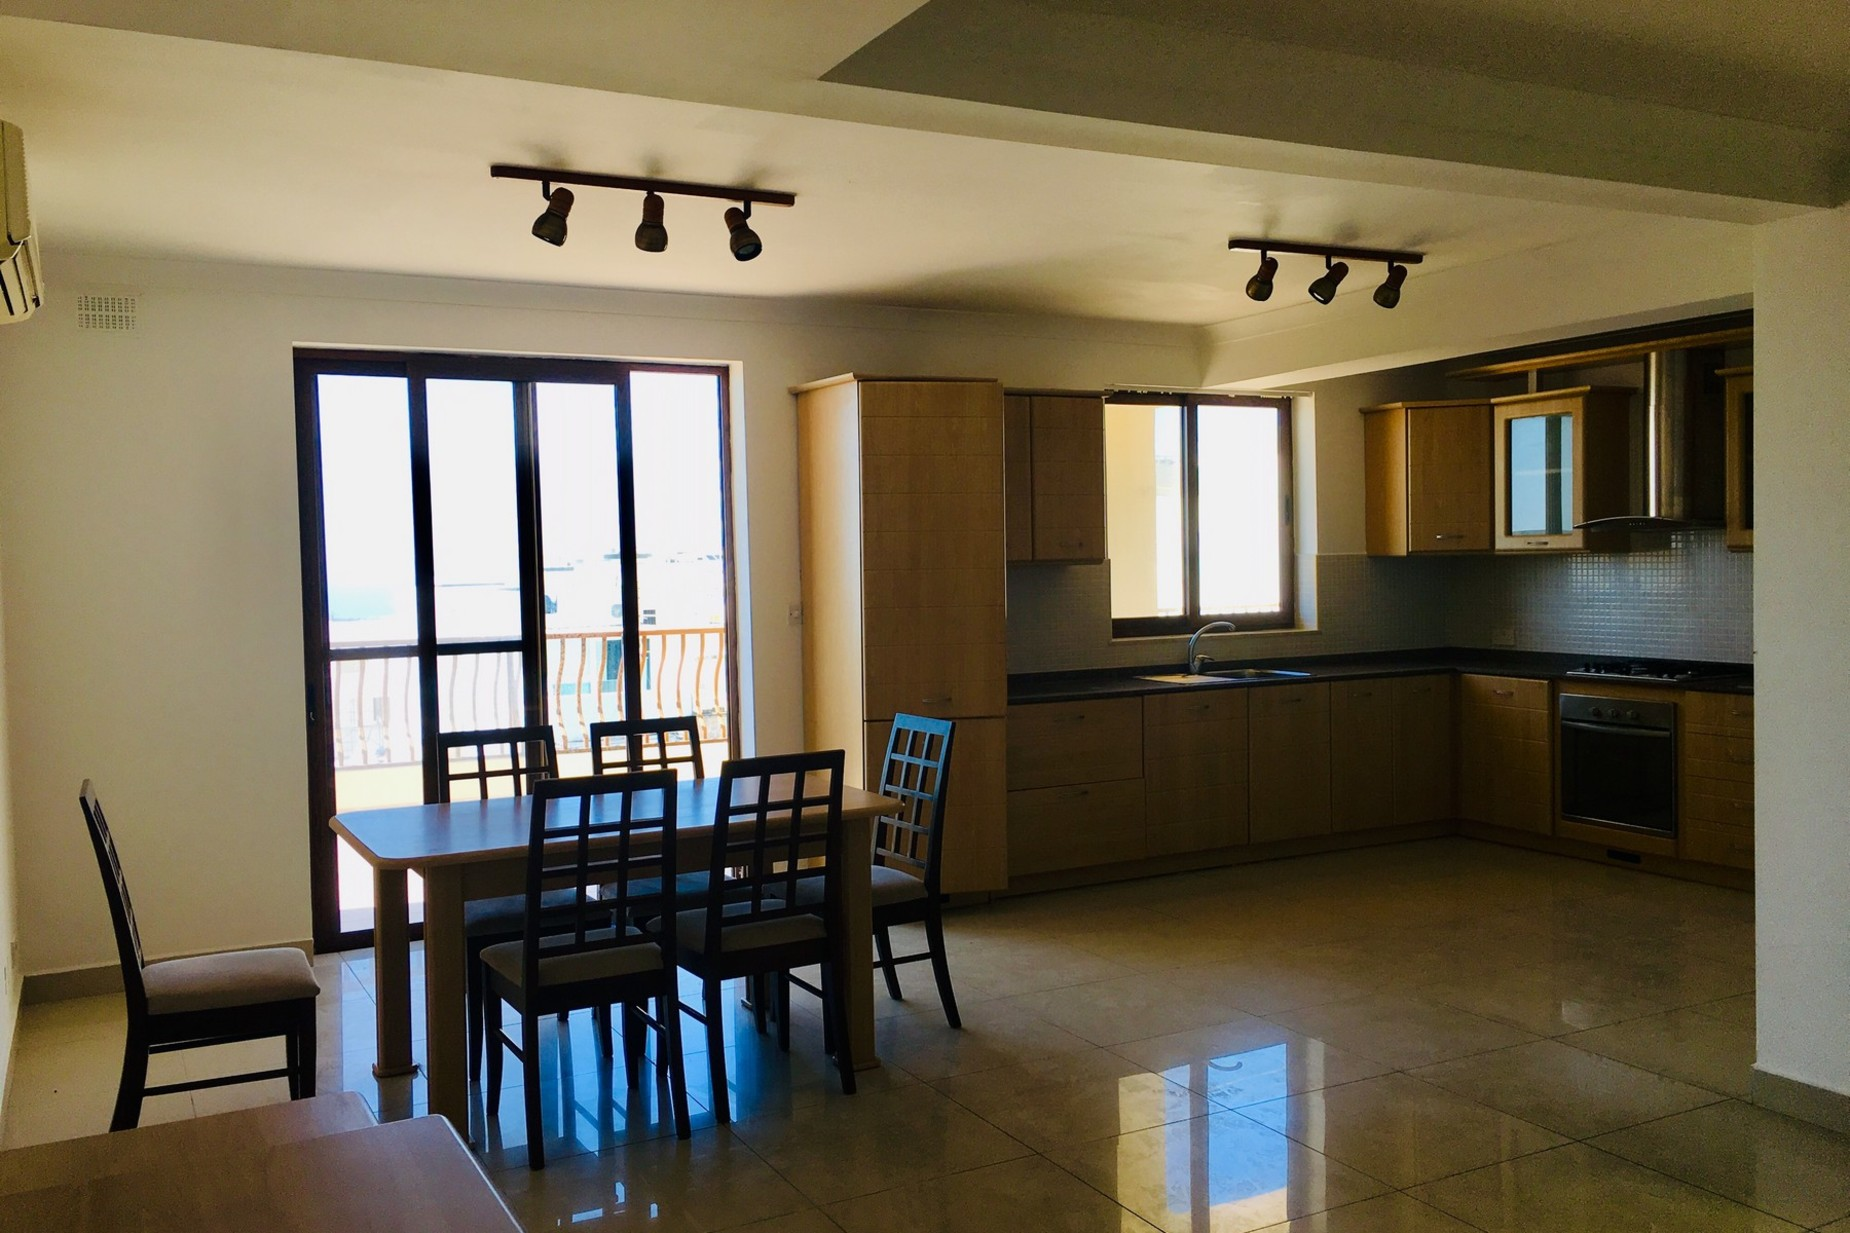 3 bed Apartment For Rent in Mellieha, Mellieha - thumb 2